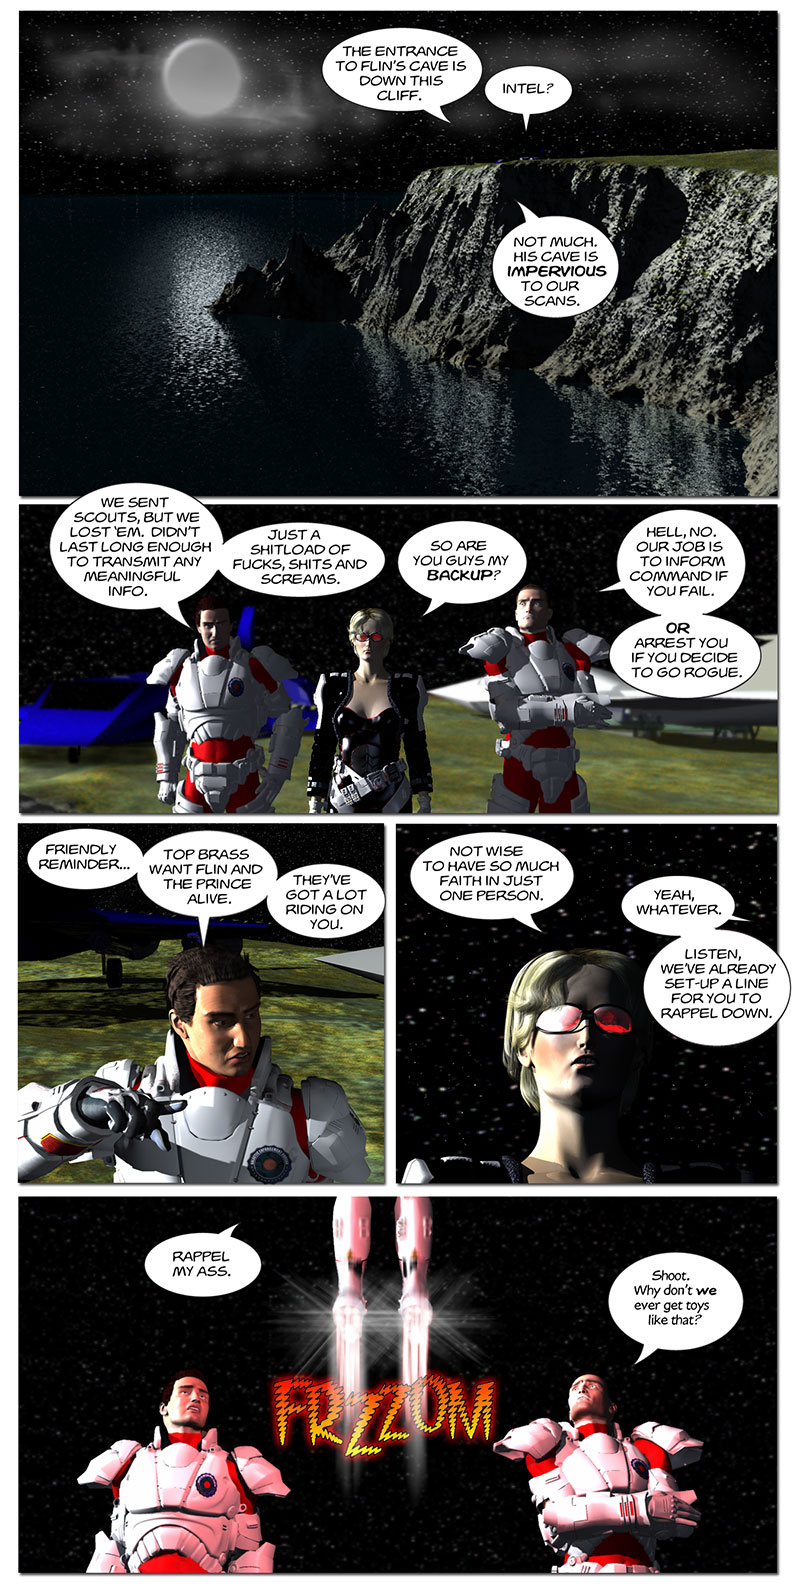 Chapter 5, page 1 – Tirin arrives at Flin's cave